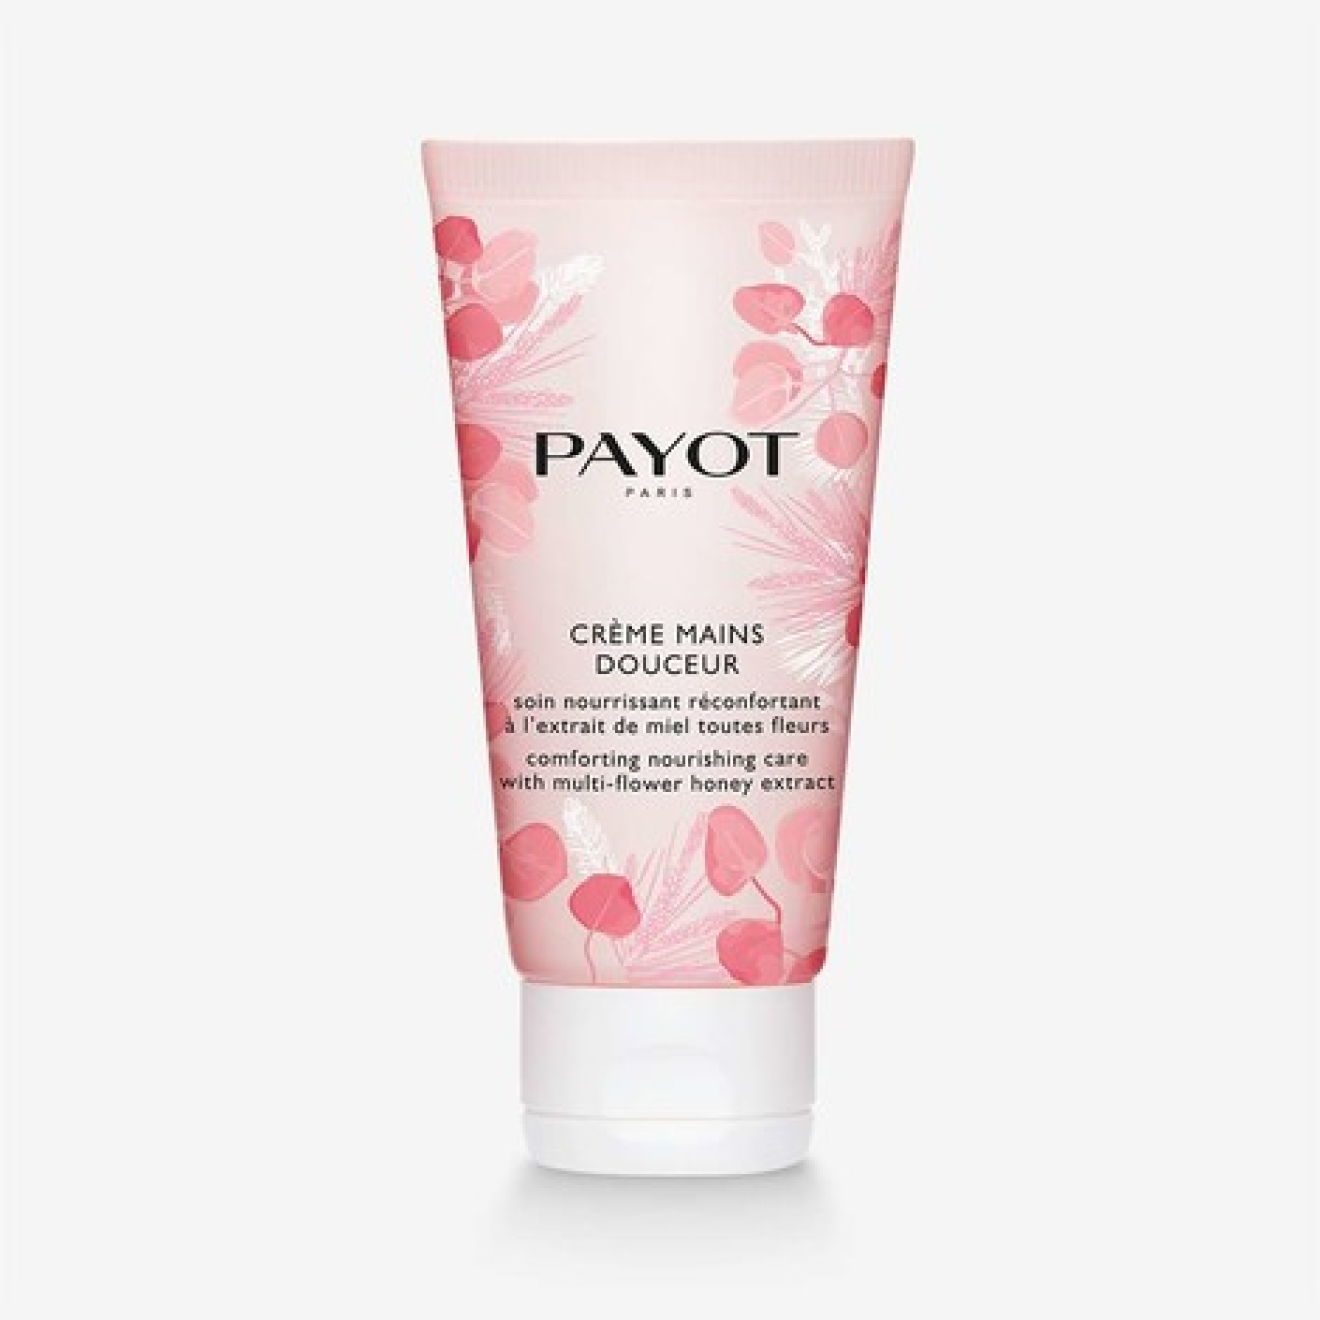 Payot Creme Mains Douceur 75 ml